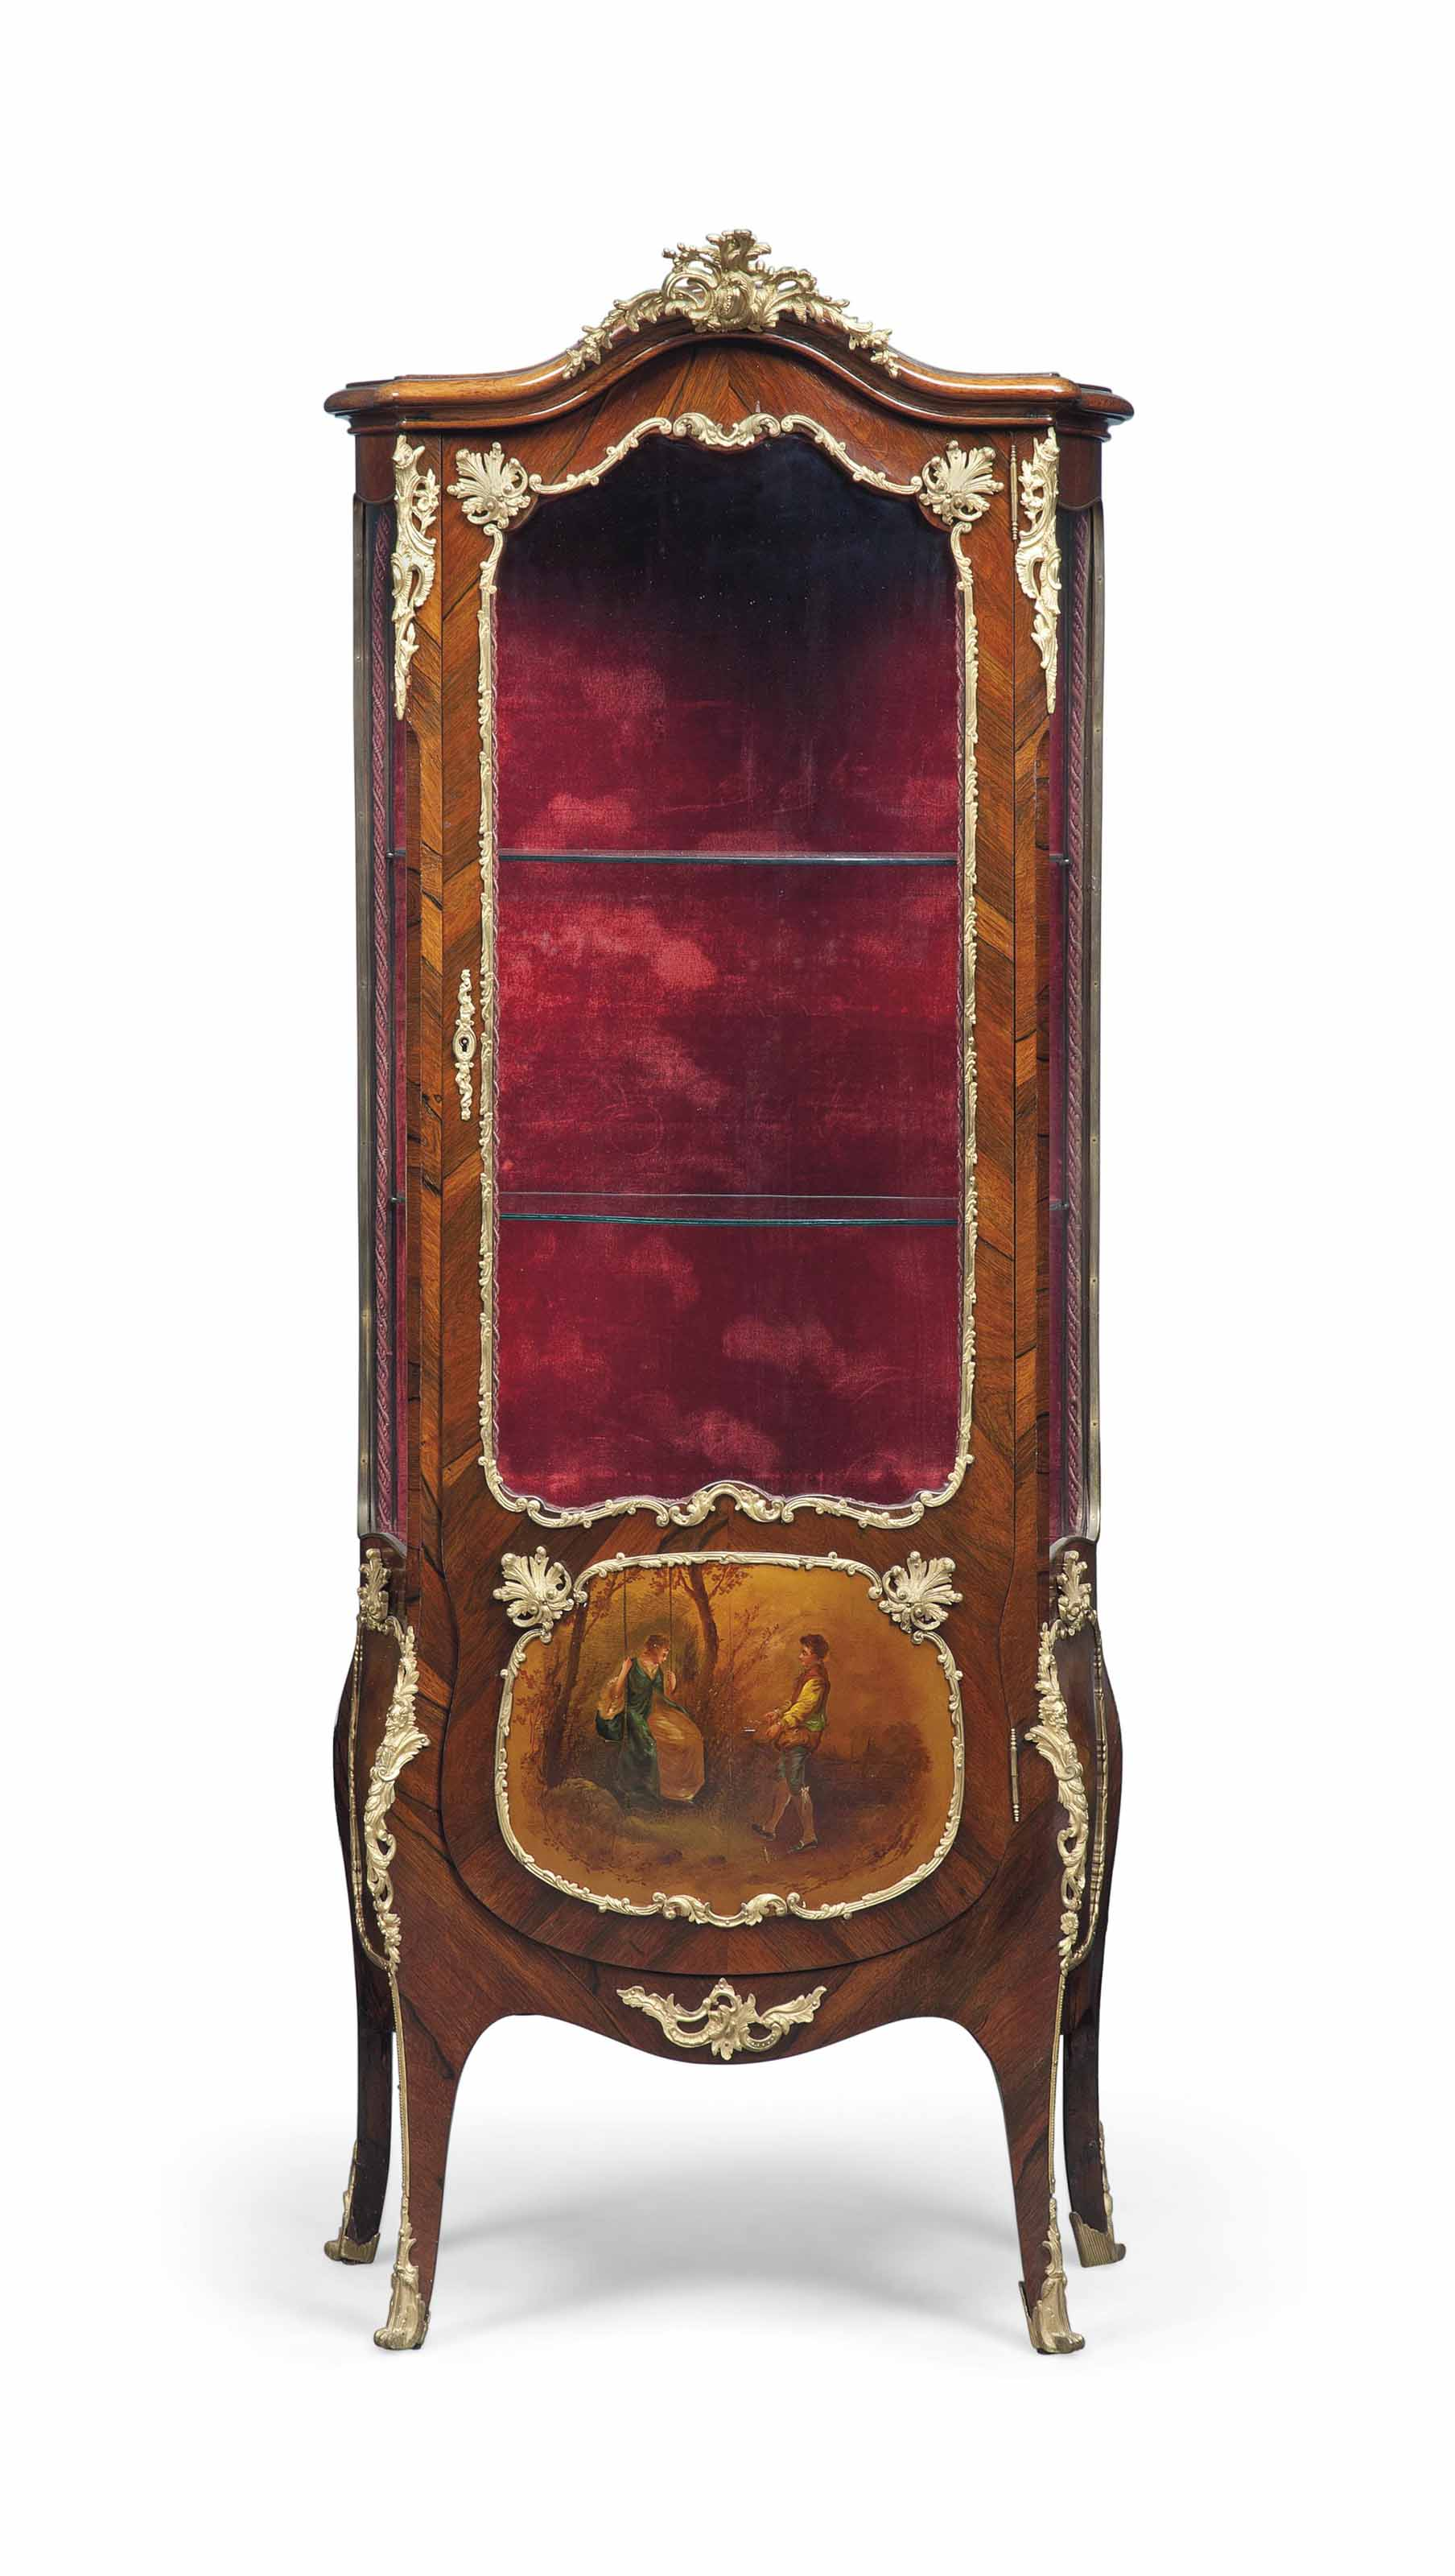 A FRENCH ORMOLU-MOUNTED ROSEWOOD AND VERNIS MARTIN VITRINE